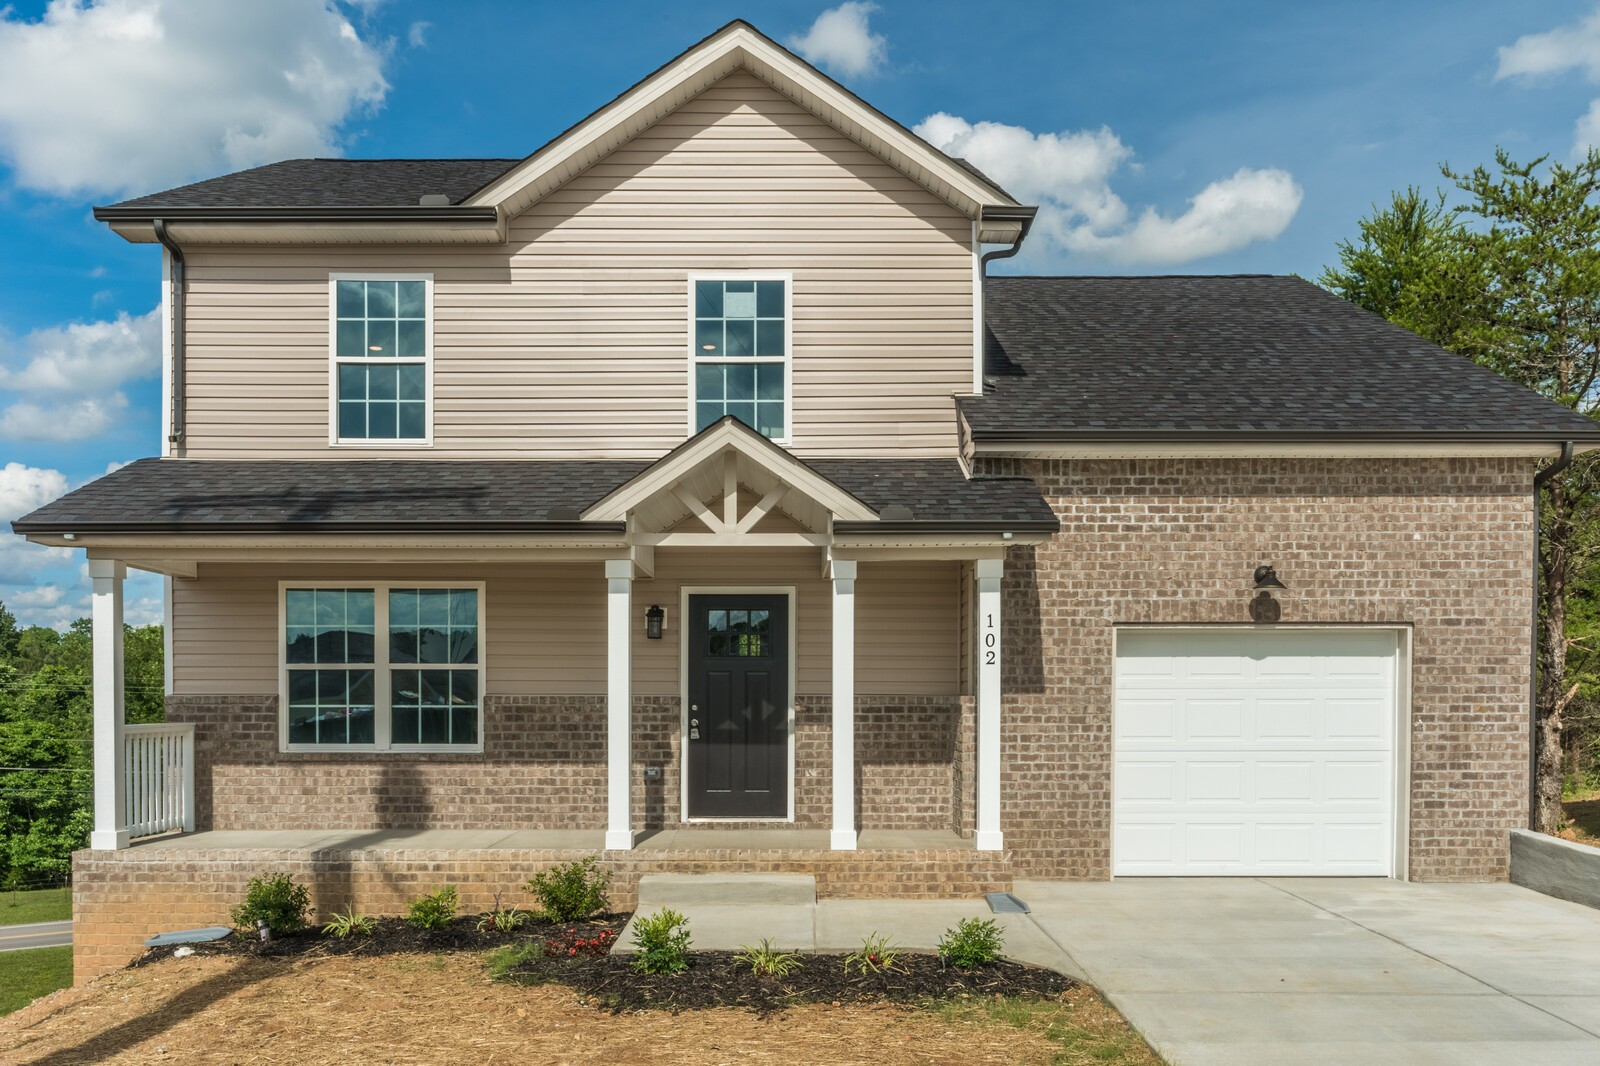 102 Sage Dr Property Photo - Springfield, TN real estate listing